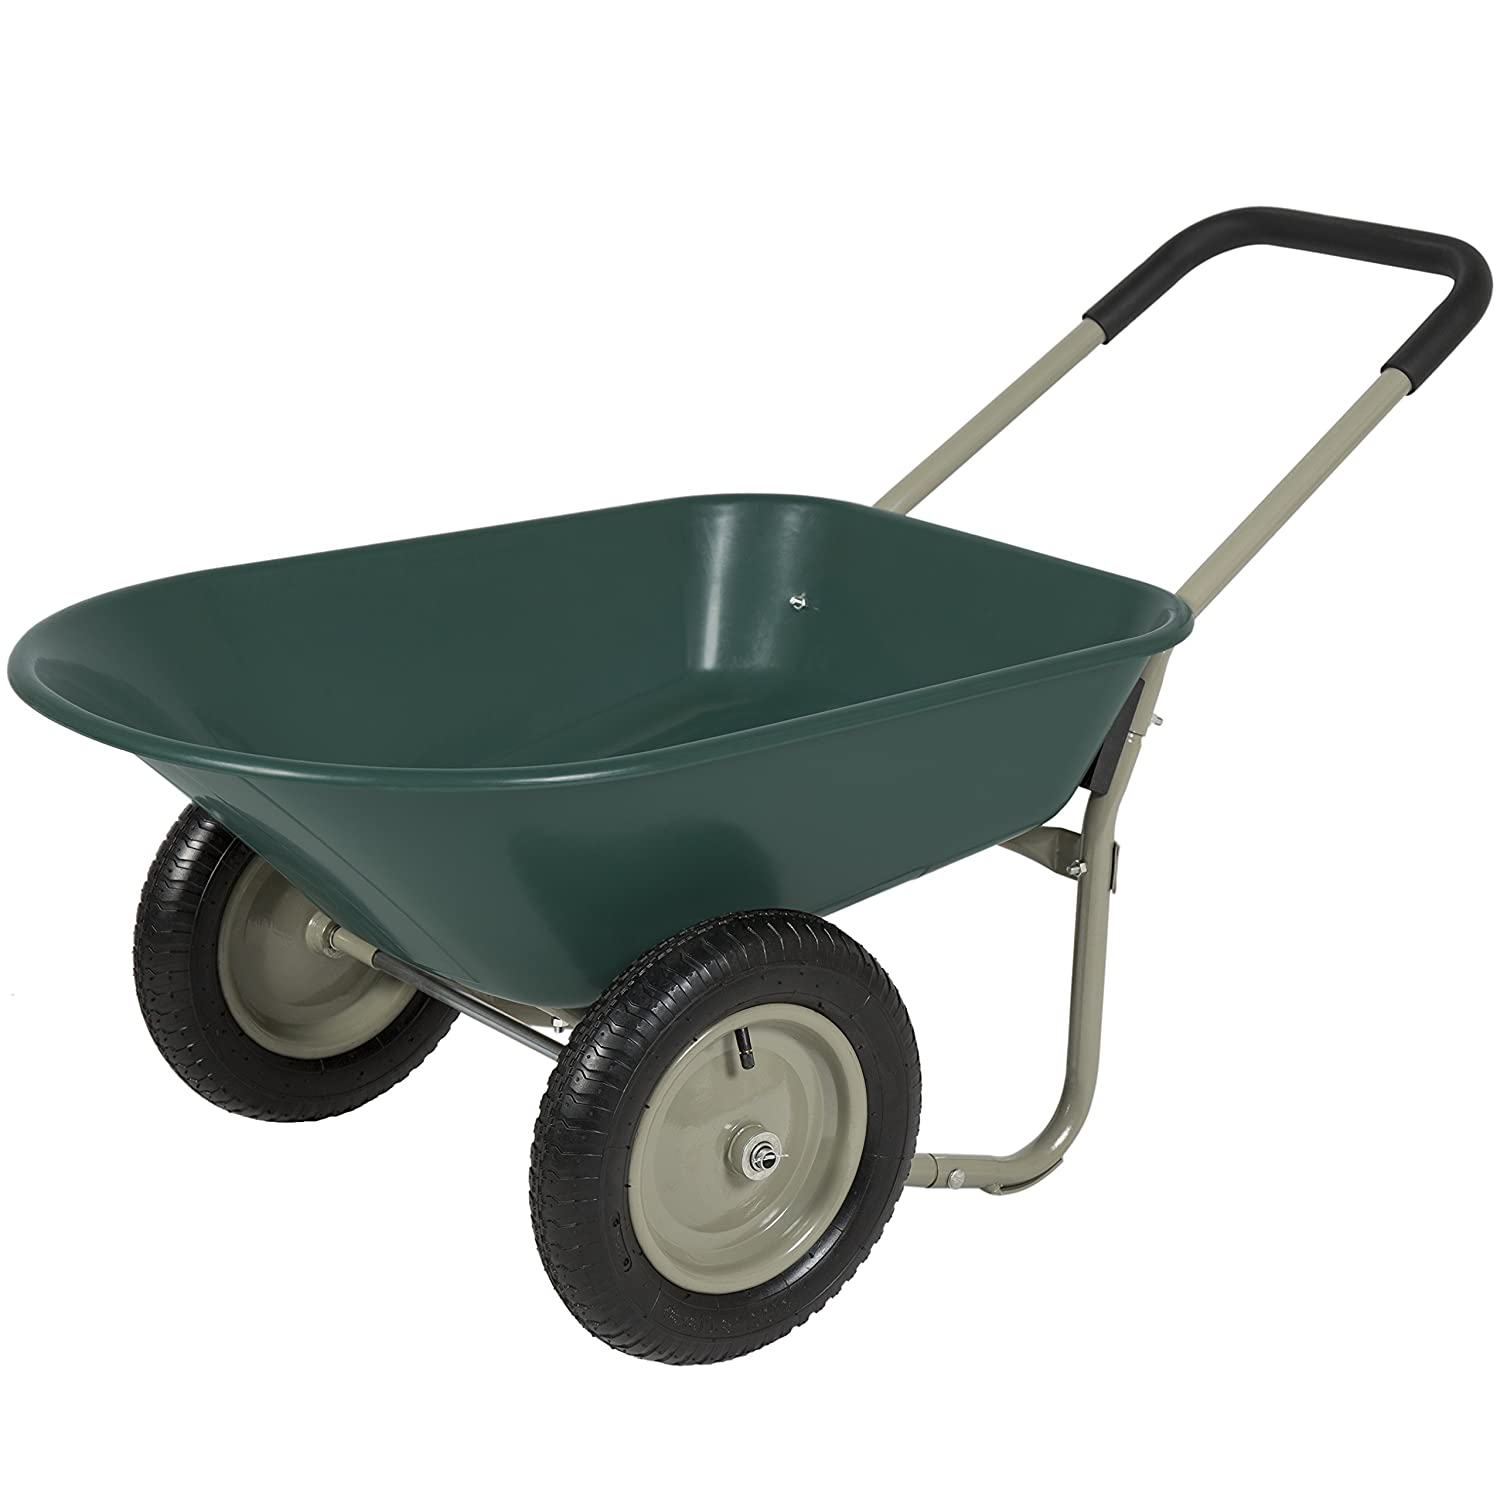 best wheelbarrow, wheelbarrow reviews, best wheelbarrow ever, heavy duty wheelbarrow, small wheelbarrow, cheap wheelbarrow, good quality wheelbarrow, sturdy wheelbarrow, wheelbarrow, two wheel wheelbarrow, garden wheelbarrow, 4 wheel wheelbarrow, wheelbarrow reviews, two wheel wheelbarrow, one wheel wheelbarrow, what is the best wheelbarrow, best garden wheelbarrow, 2 wheel wheelbarrow, four wheel wheelbarrow, two wheel steel wheelbarrow, steel 2 wheel wheelbarrow, buy wheelbarrow, wheel barrels at home depot, wheelbarrow design, large garden wheelbarrows, all metal wheelbarrow, motorized yard cart